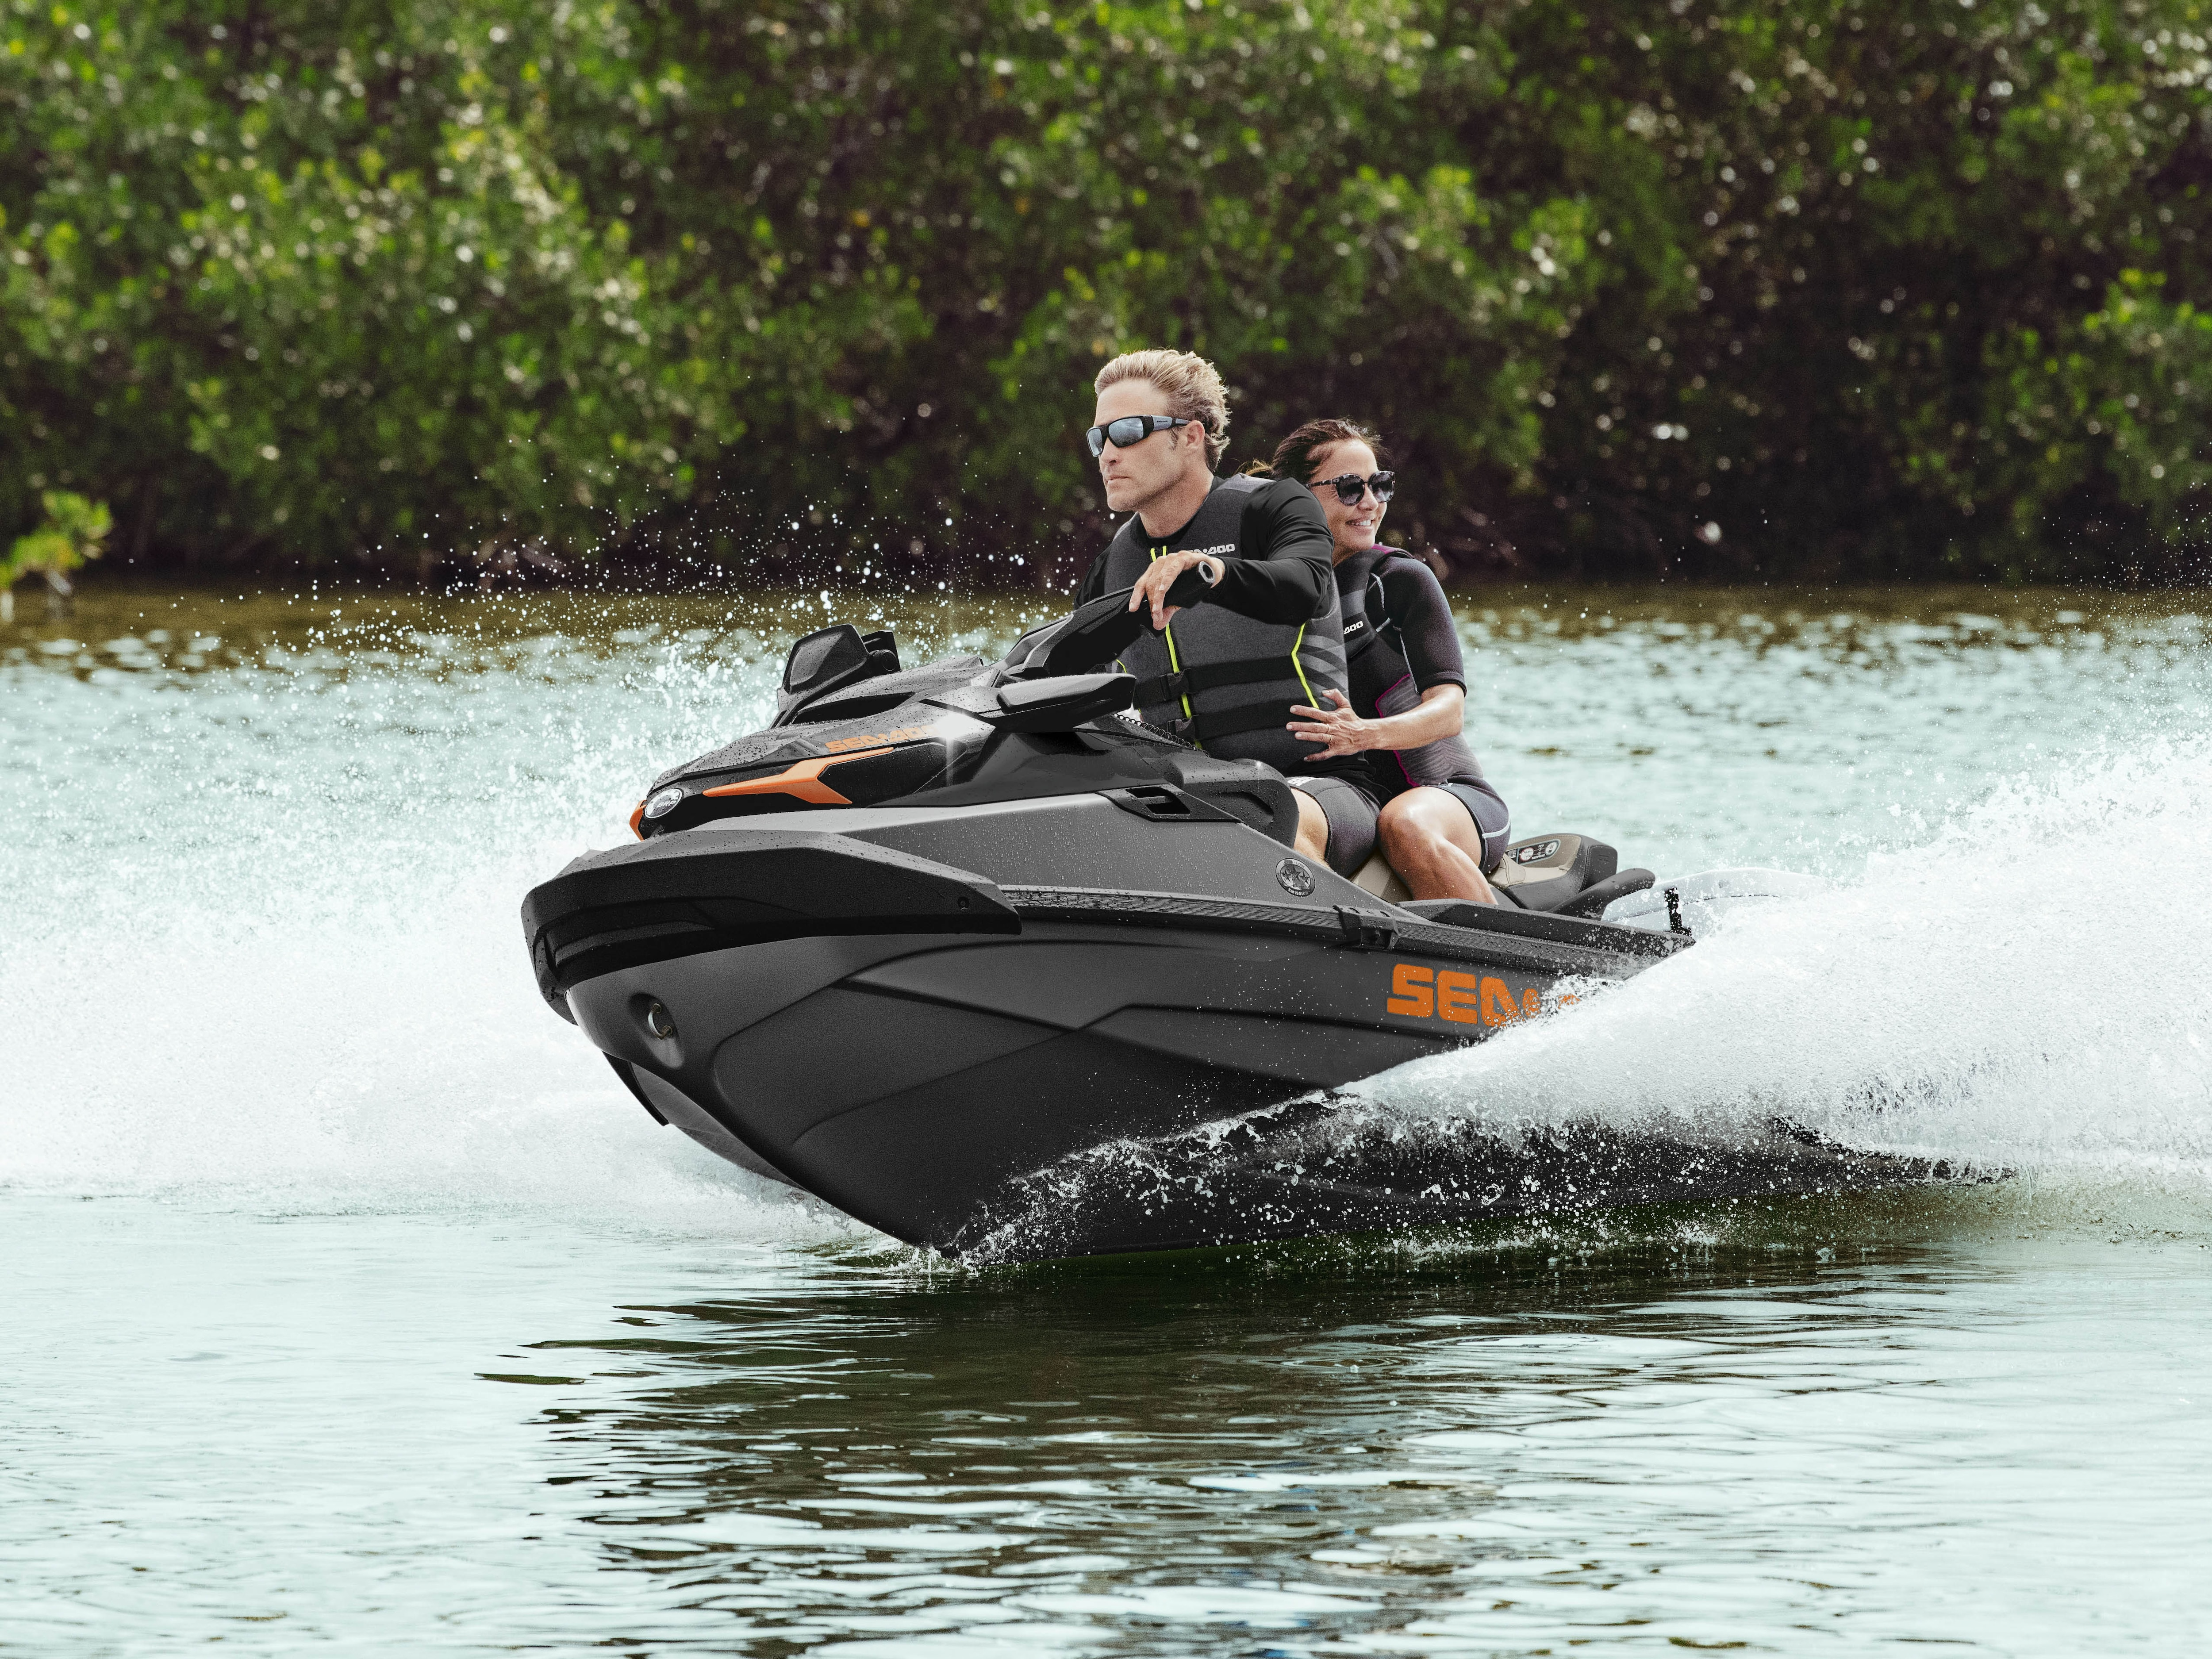 Couple riding a Sea-Doo GTX